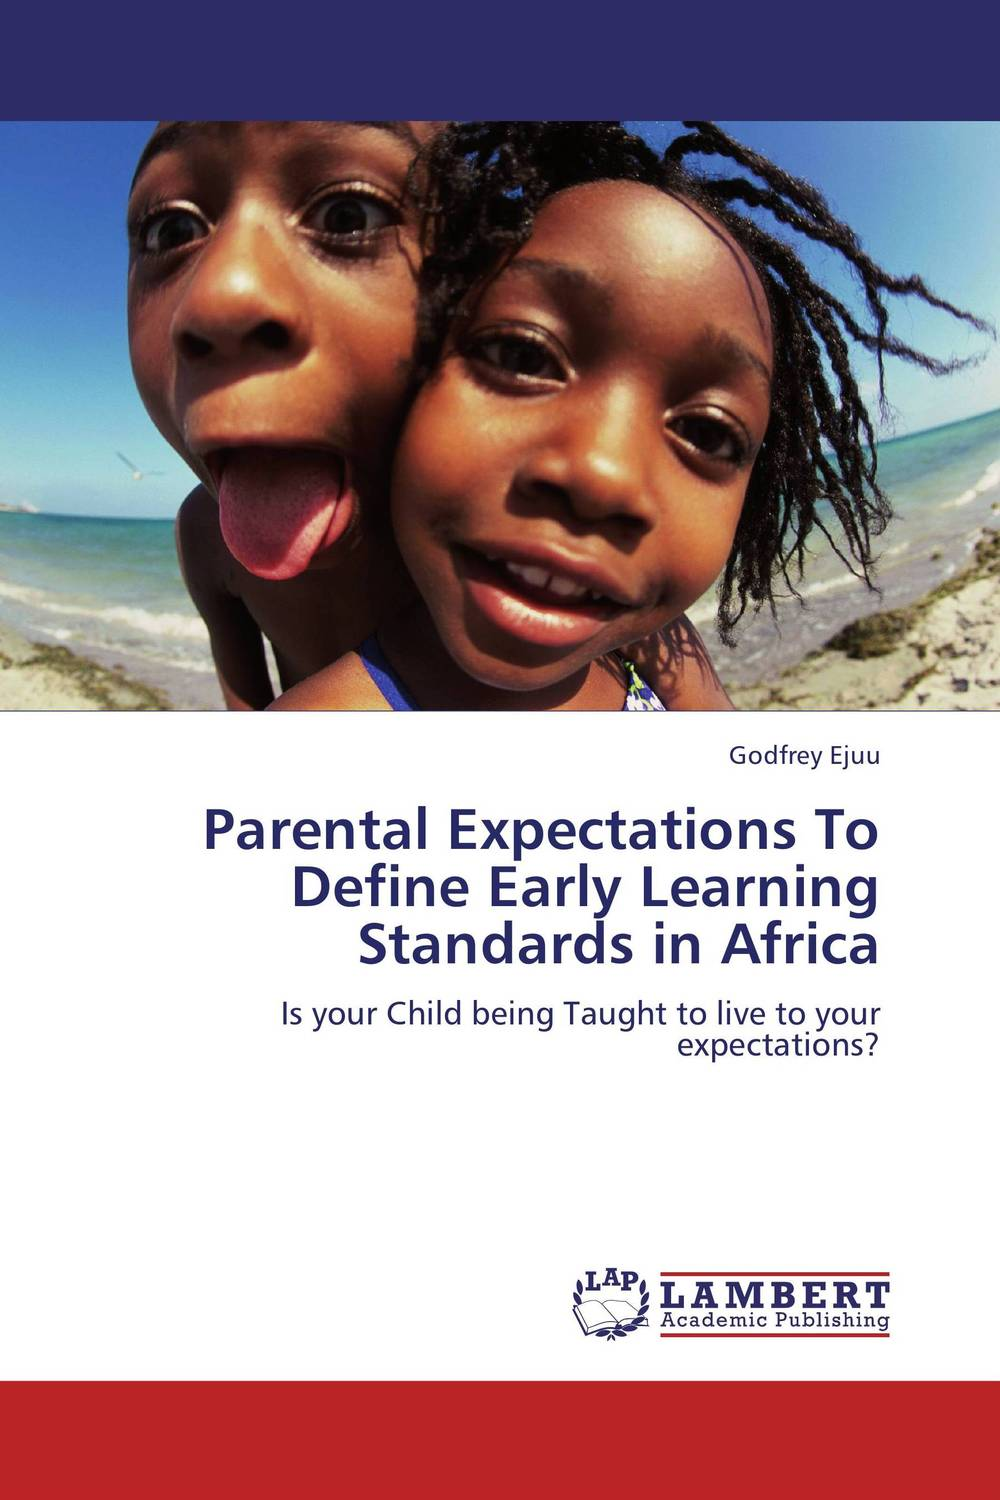 Parental Expectations To Define Early Learning Standards in Africa